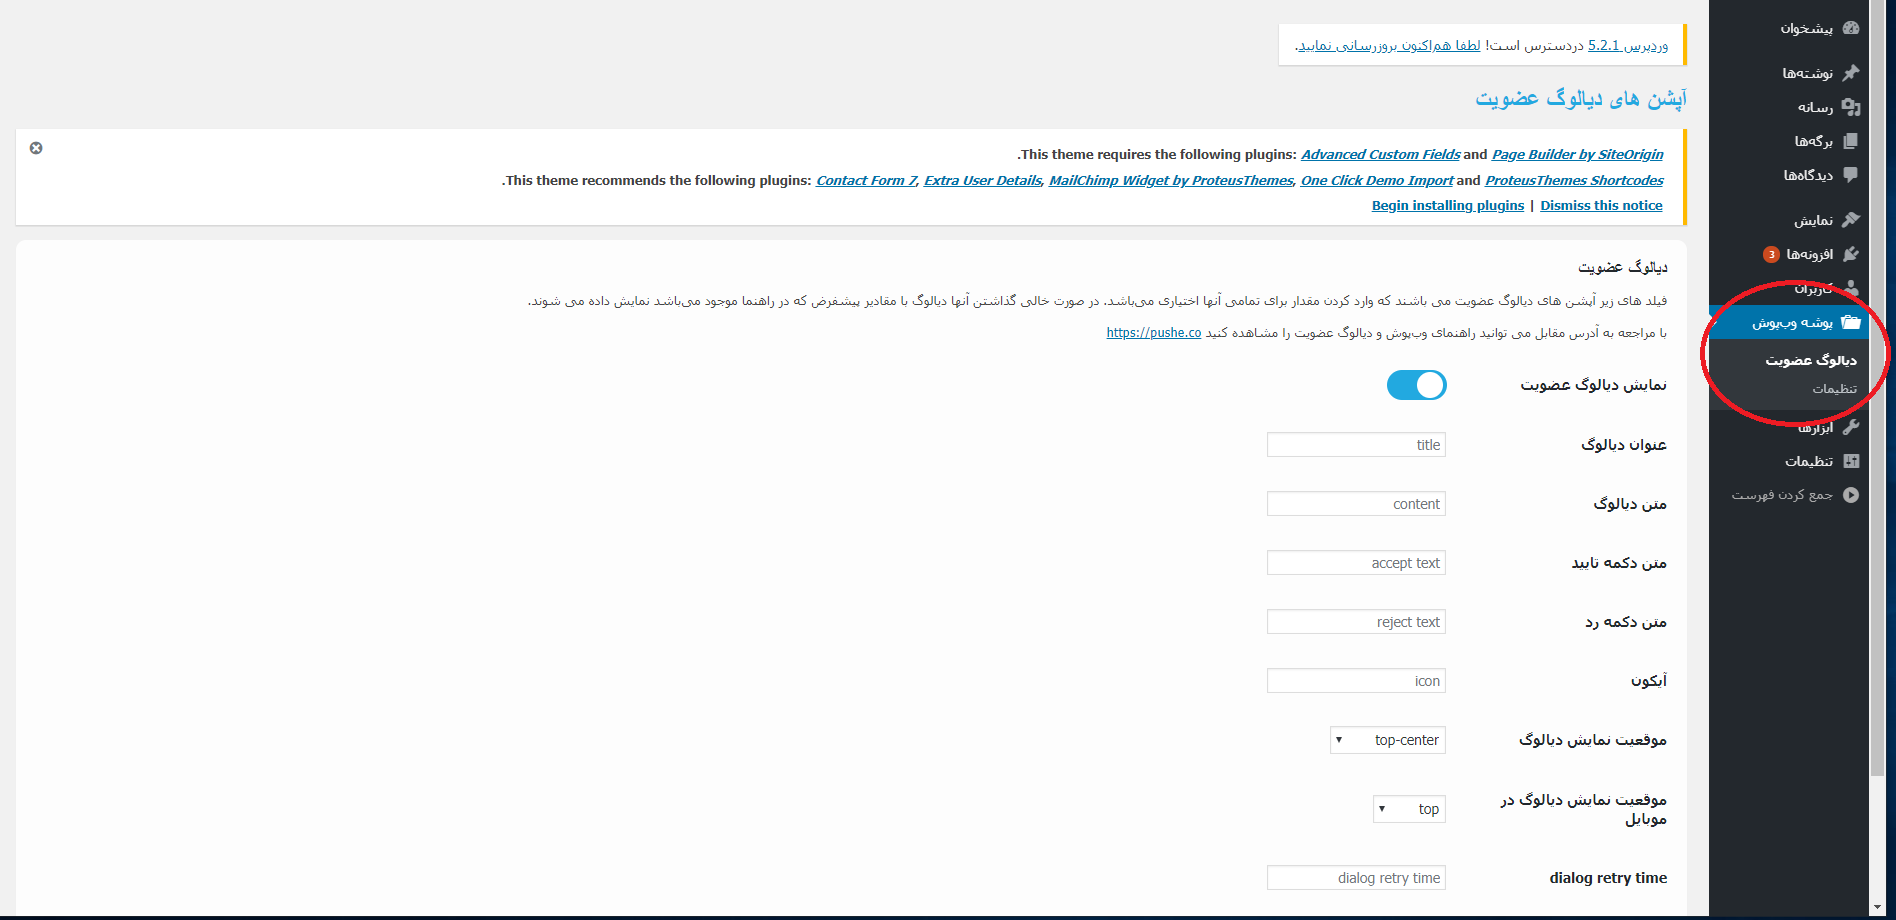 pushe webpush subscribe dialog options page